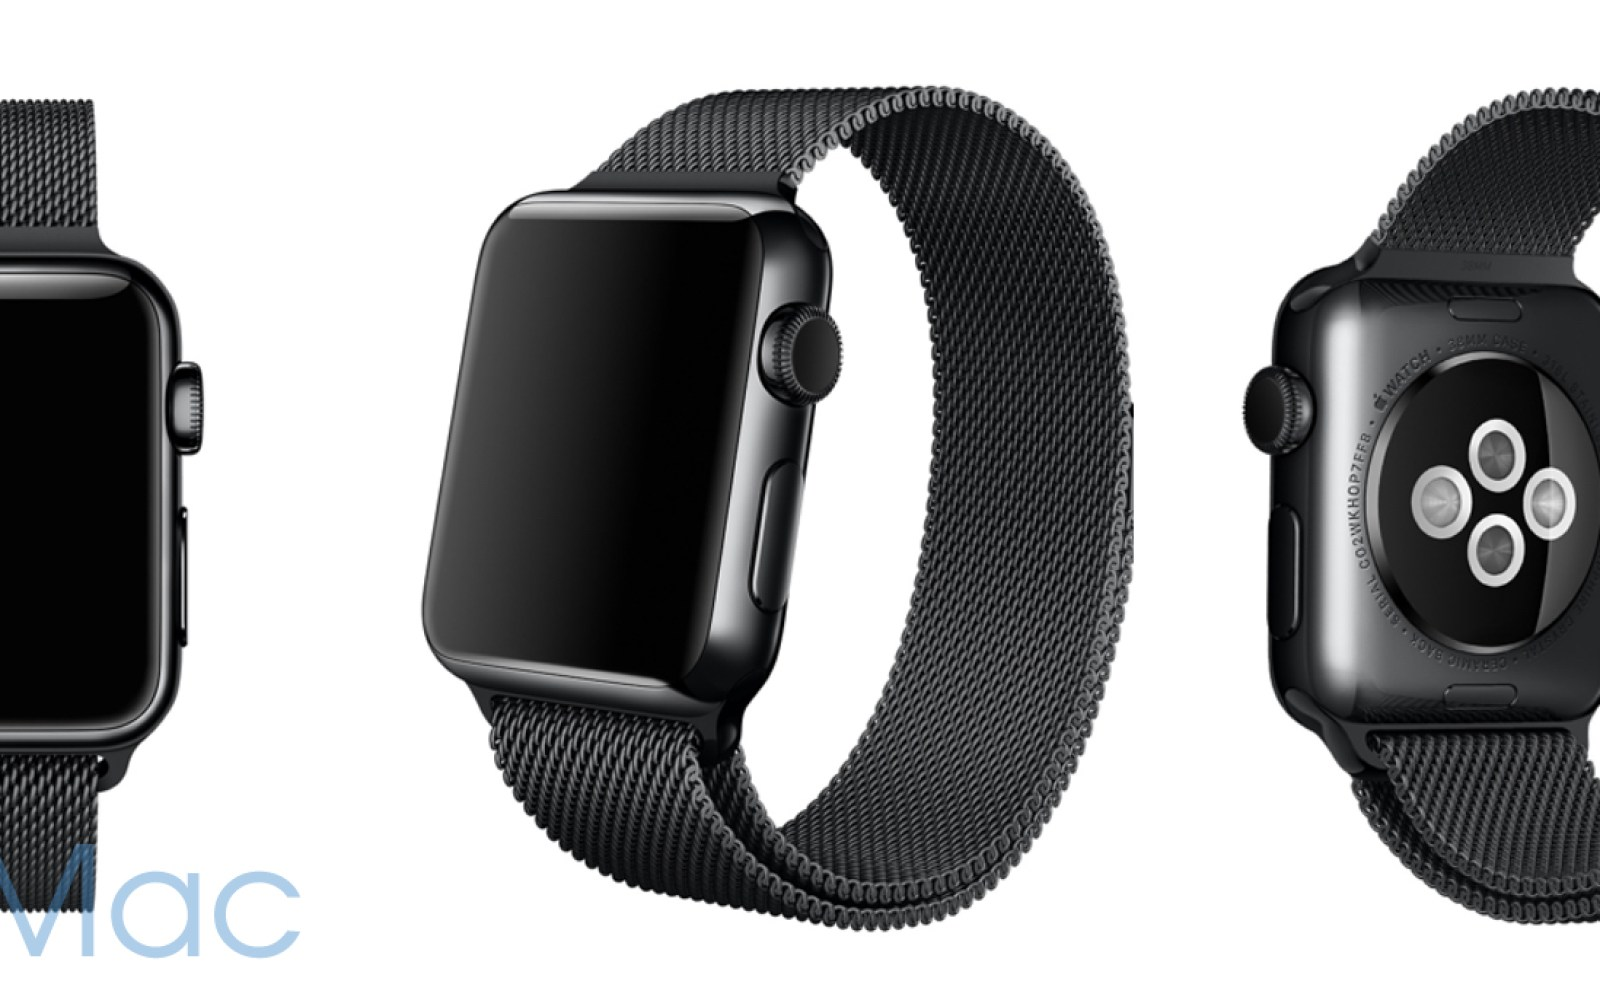 Apple leaks unreleased Space Black Milanese Loop Apple Watch band on Czech store site [Update: Gone!]